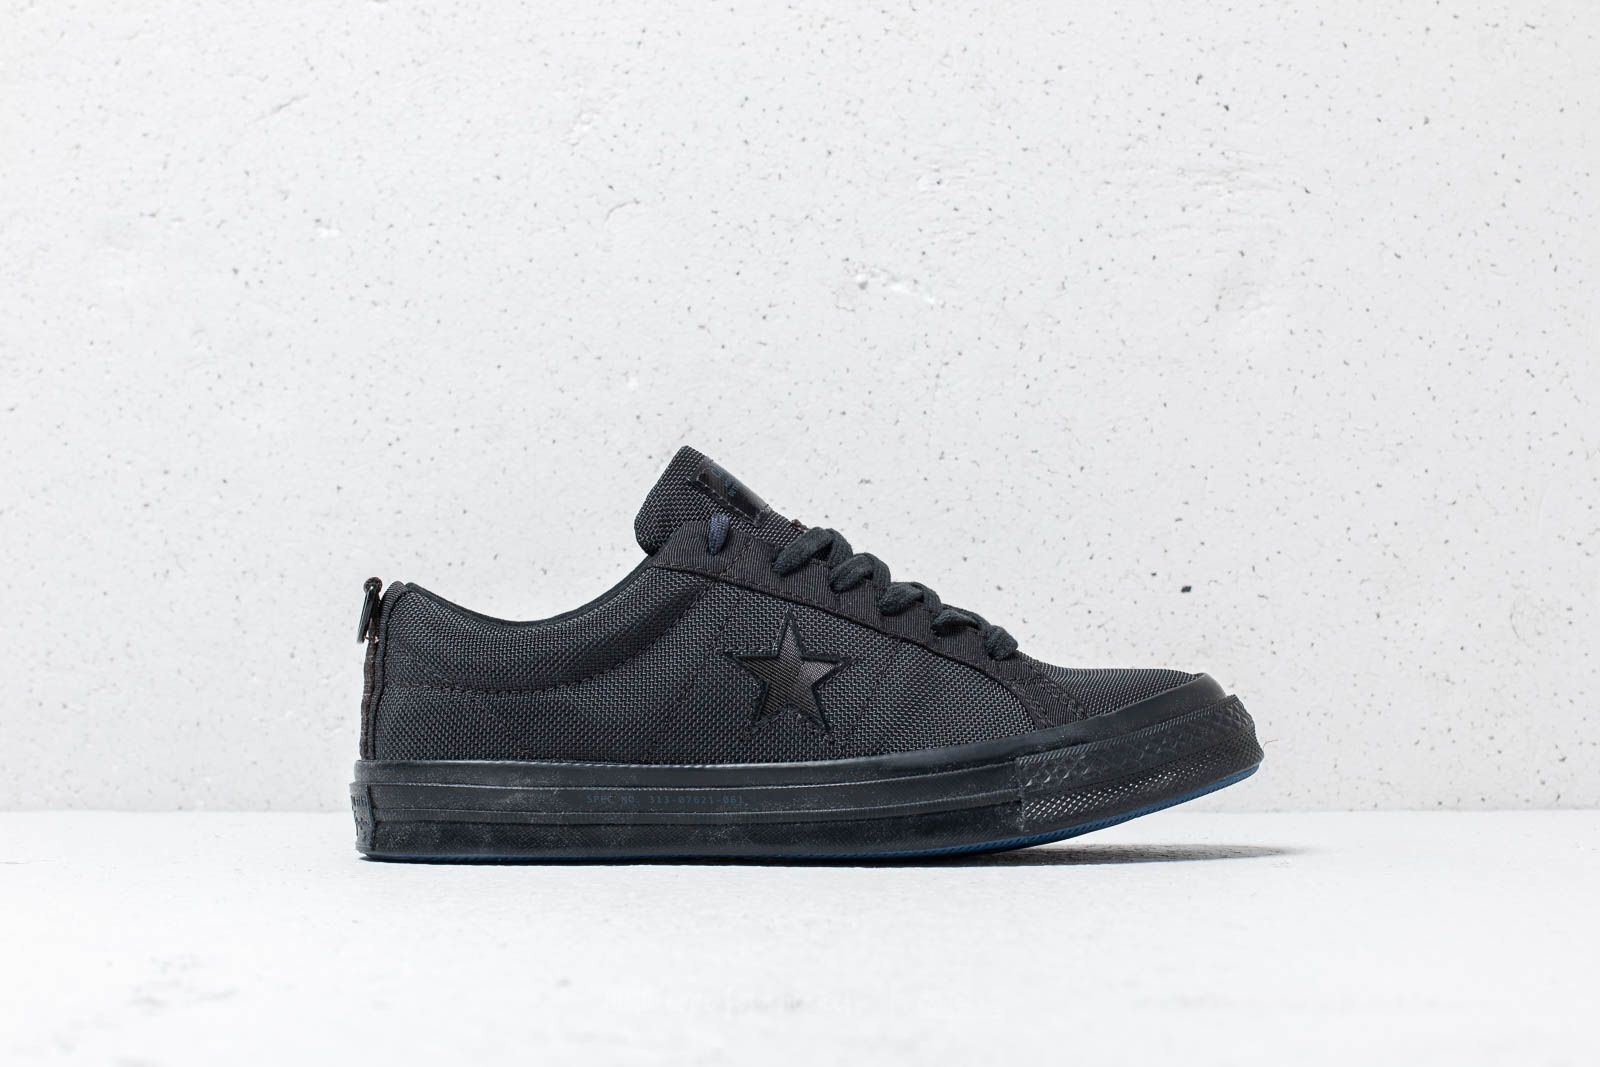 c651d1101c86a0 Converse x Carhartt WIP One Star OX Black  Black  Black at a great price